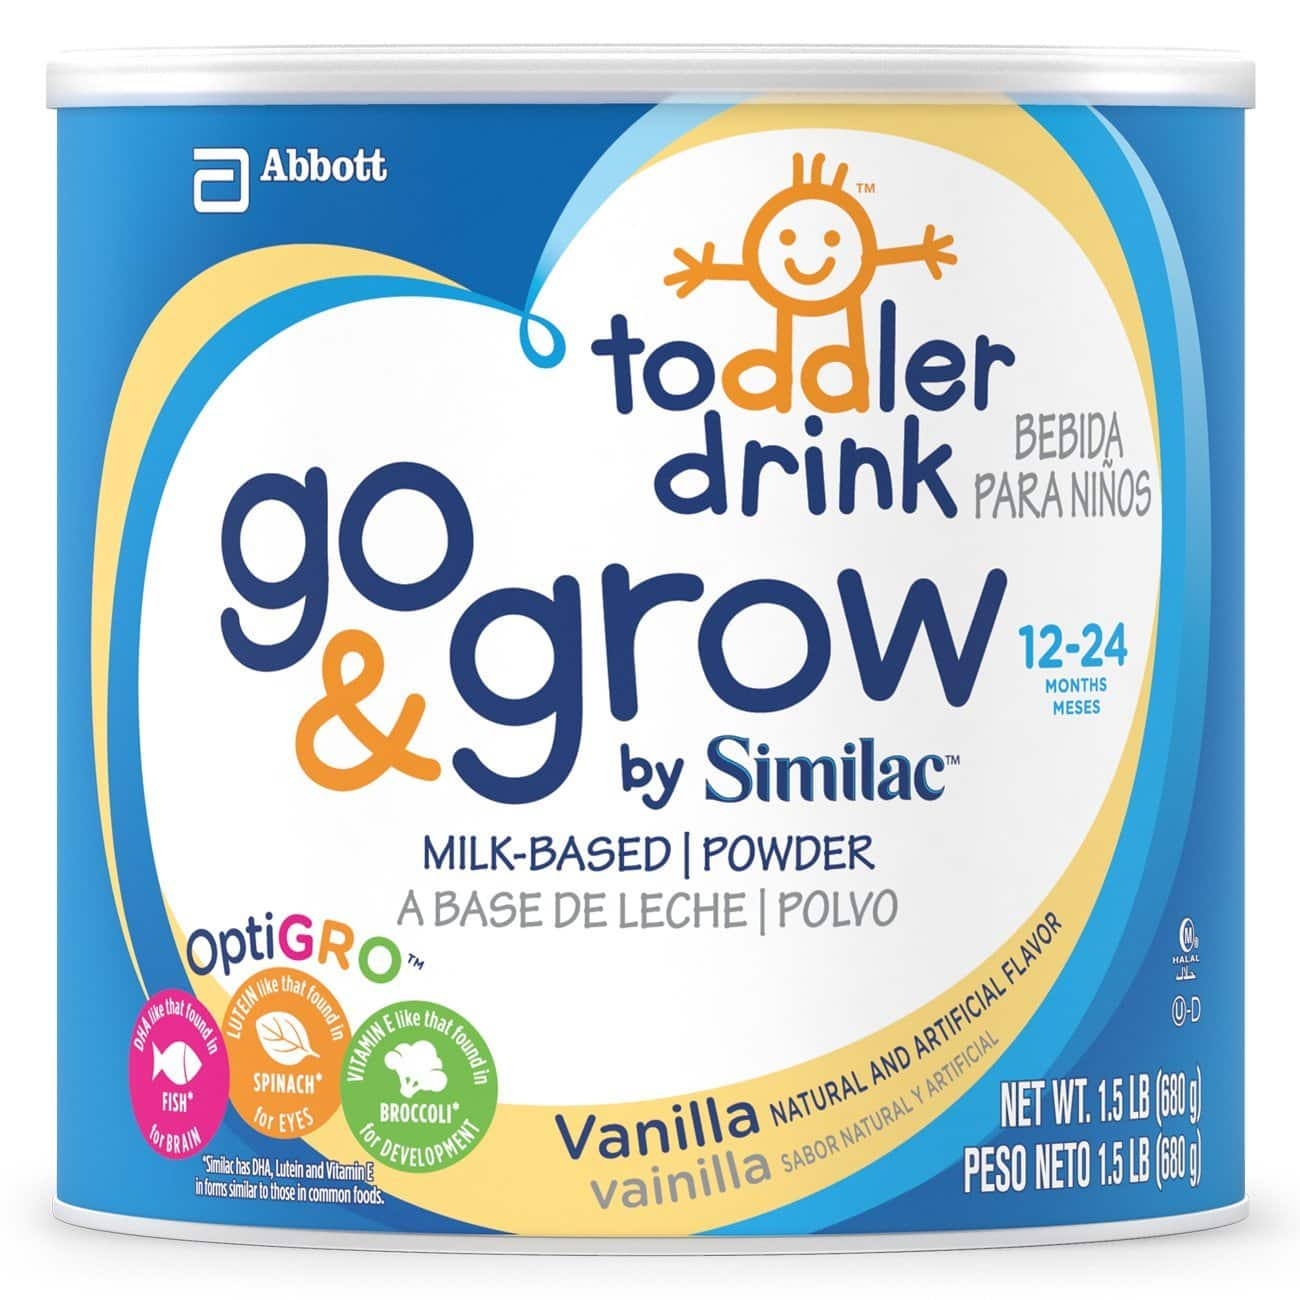 Go & Grow By Similac Milk Based Toddler Drink, Vanilla, Powder, 1.5lbs (Pack of 4) $60@amazon $59.99